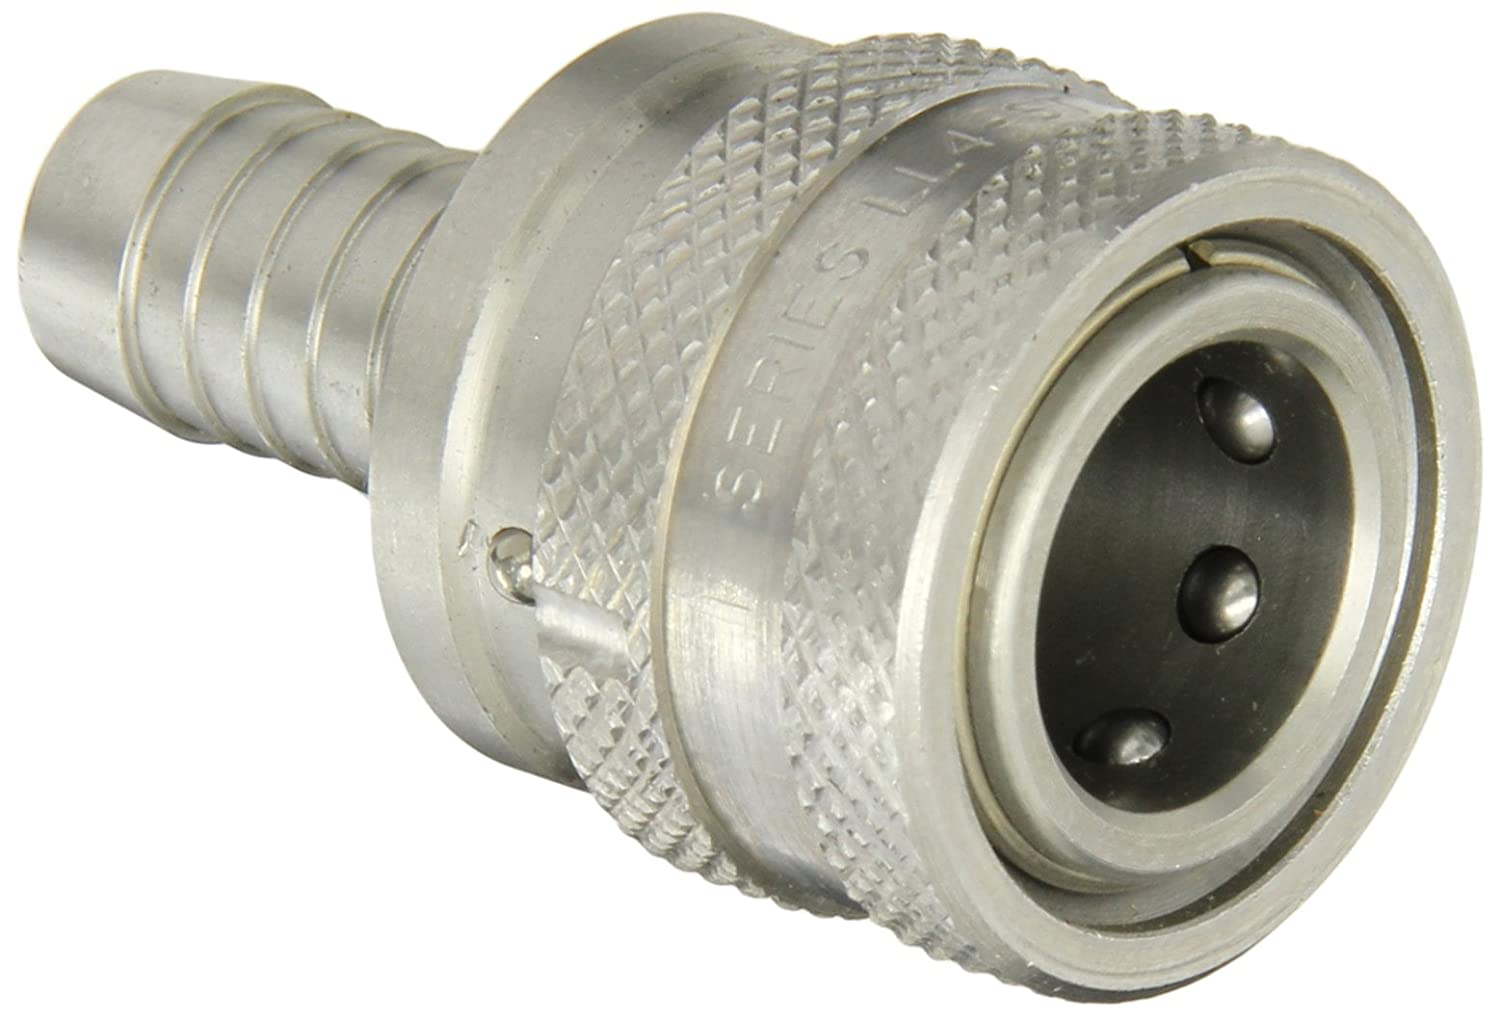 1//2 Body 1//2 Hose ID 1//2 Body 1//2 Hose ID Sleeve Lock Socket Eaton Hansen LL4S27SL Stainless Steel 303 Straight Through Ball Lock Hydraulic Fitting